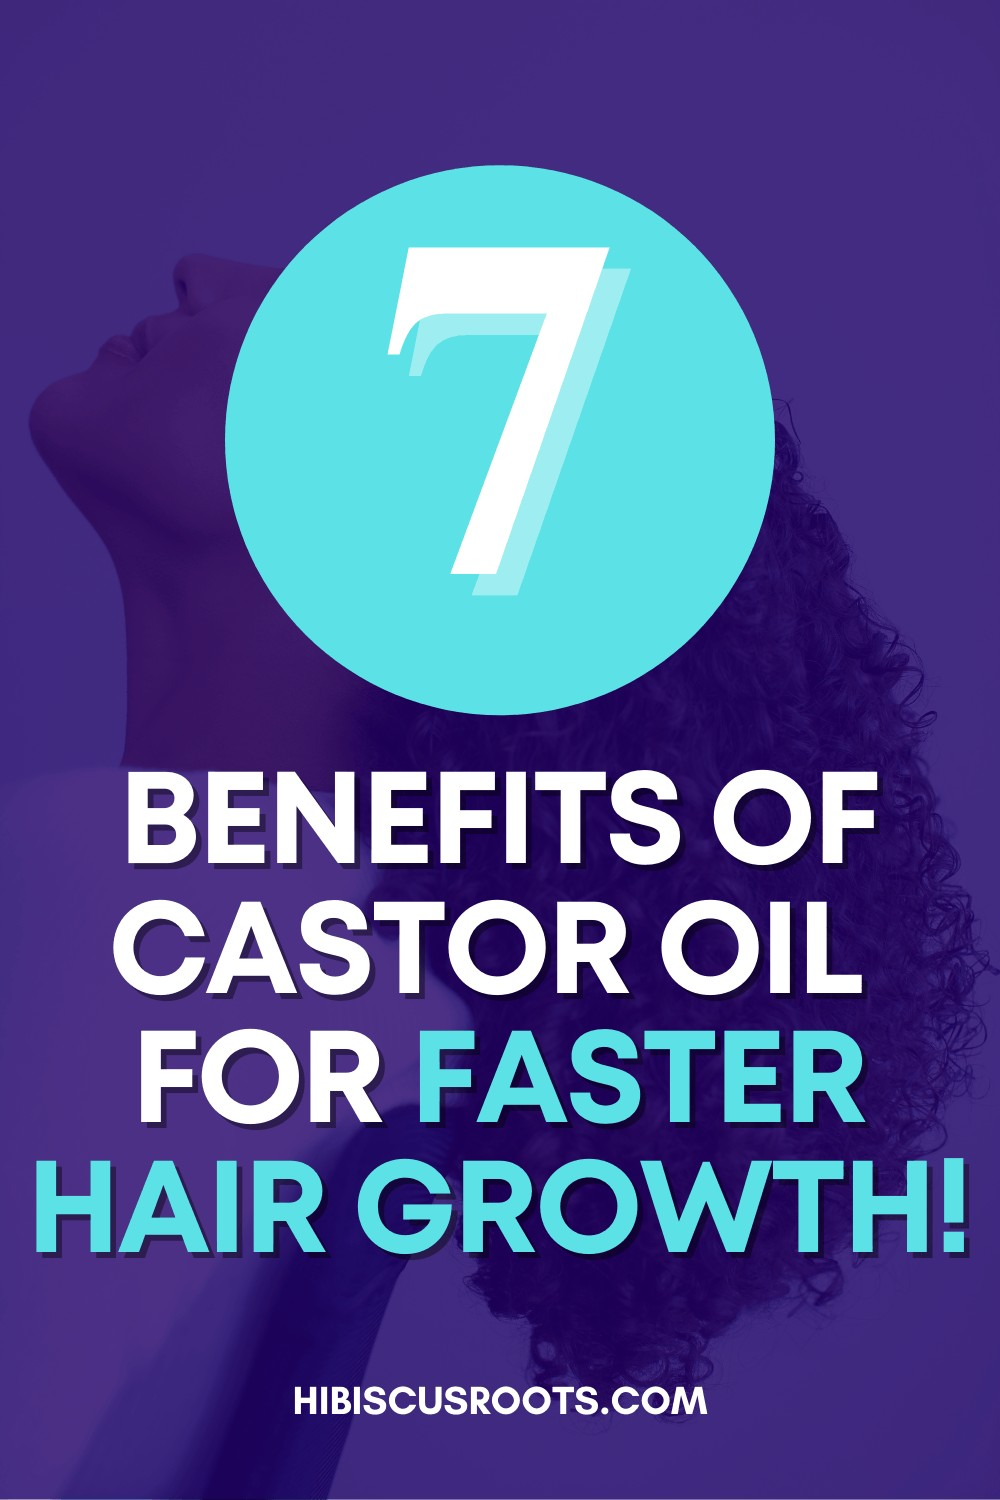 Does Castor Oil ACTUALLY Make Your Hair Grow Faster?